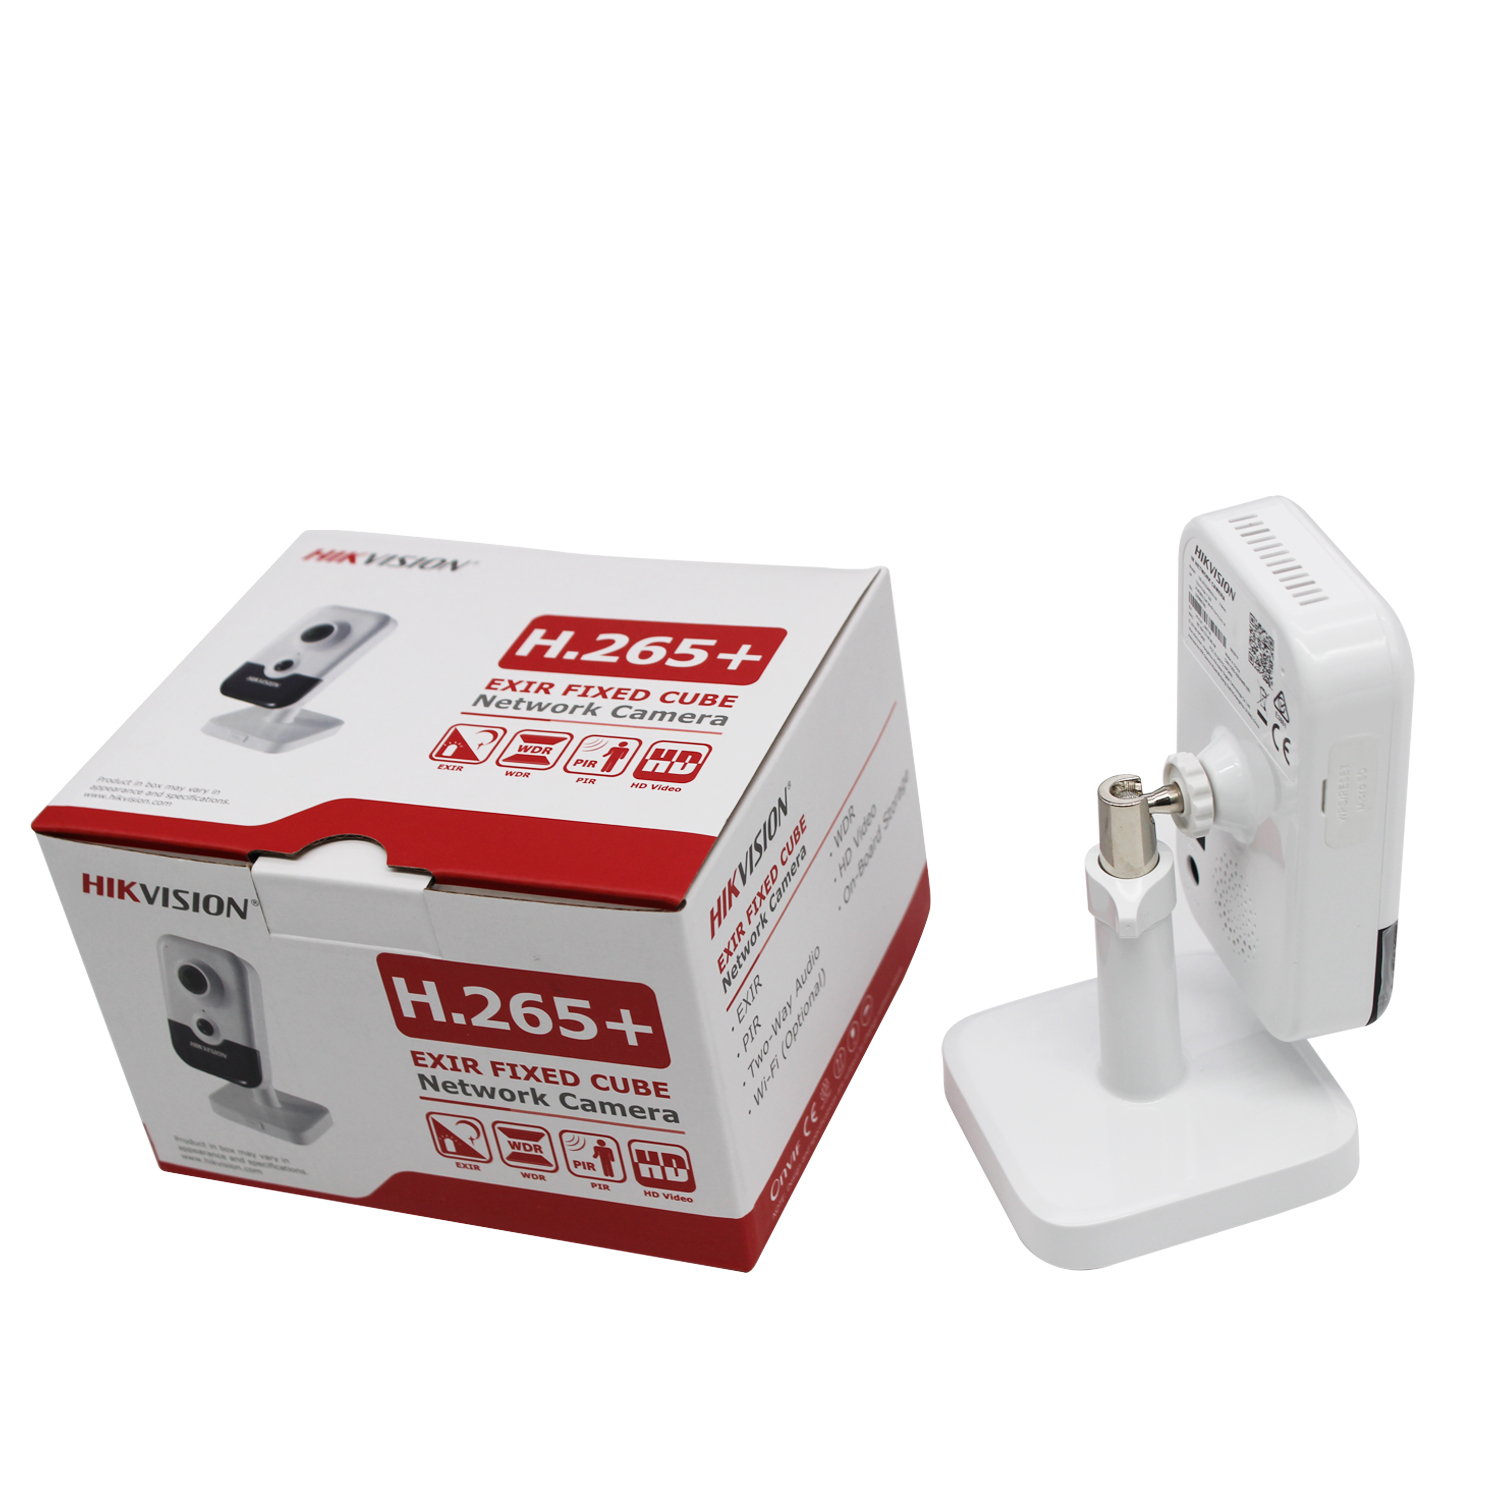 Original Hikvision 6MP WiFi cámara IP DS 2CD2463G0 IW HD cámara de seguridad inalámbrica hogareña H.265 Audio bidireccional ranura SD P2P IR 10M - 6